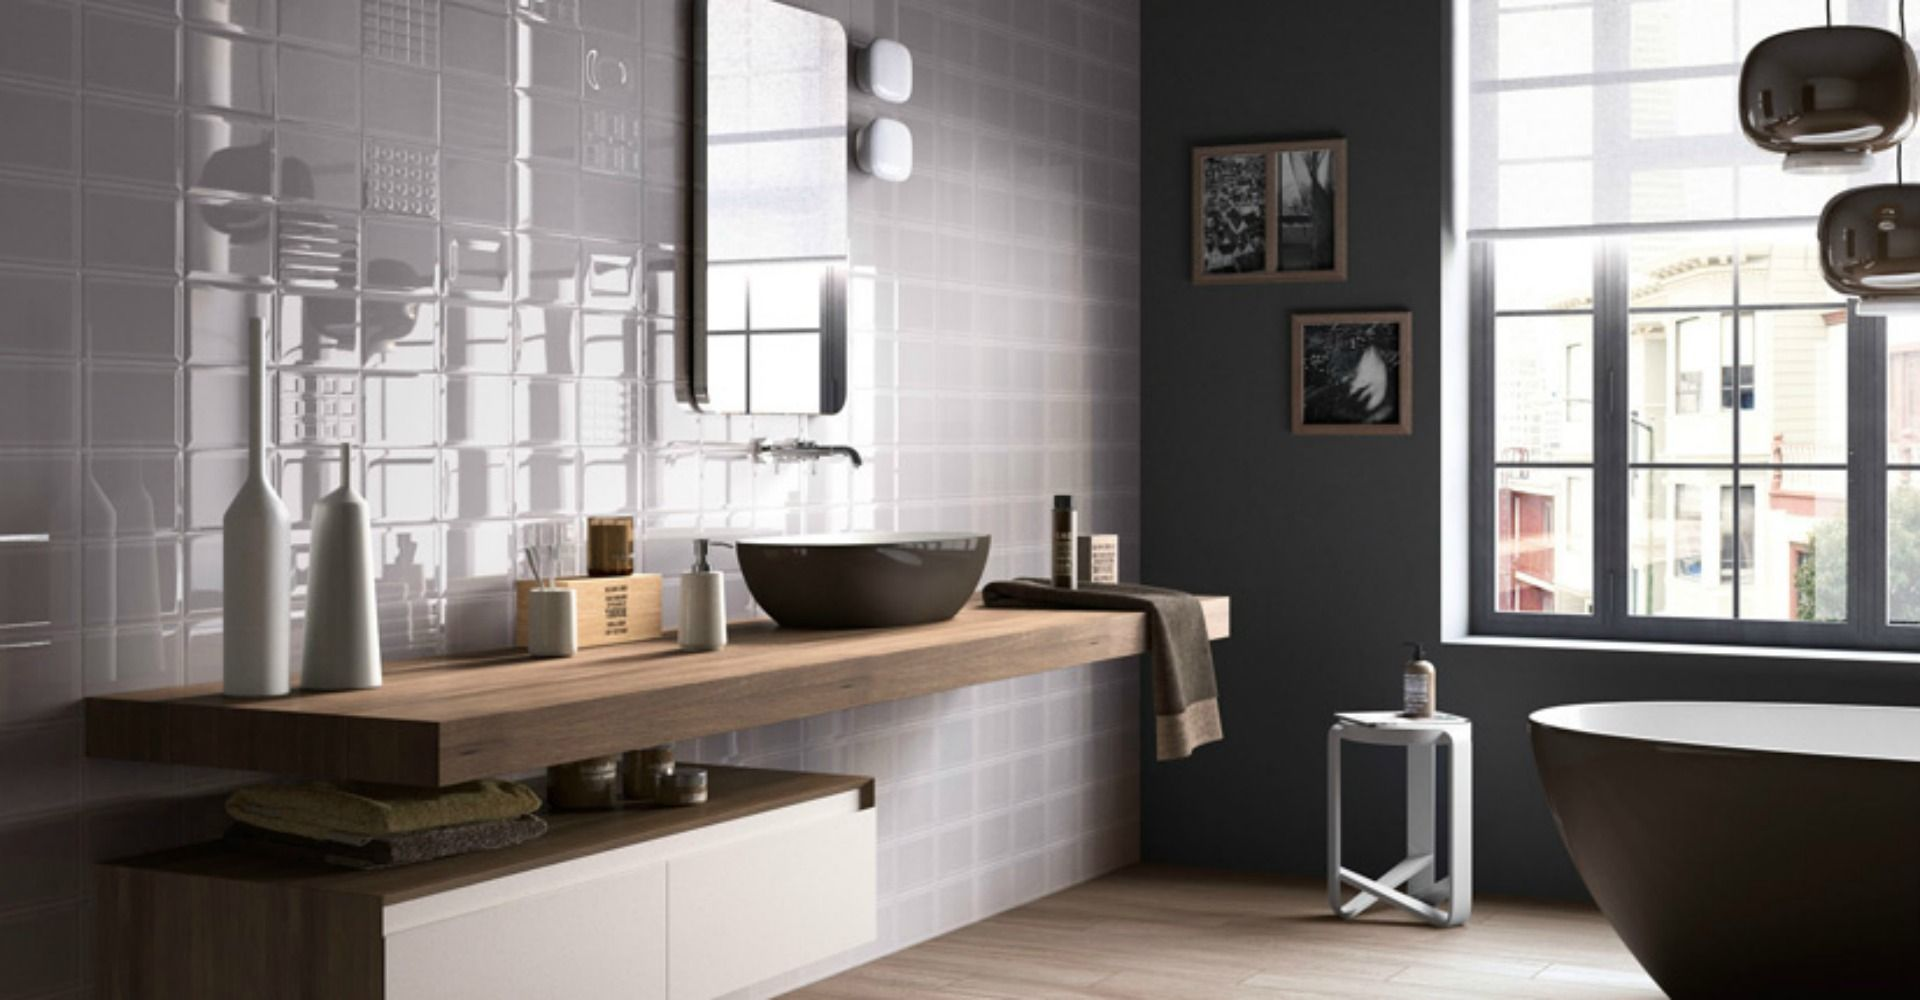 Tile shop canberra maleny house pinterest house welcome to the premier collection of wall and floor tiles by the yorkshire tile company showrooms in sheffield doncaster leeds and newcastle dailygadgetfo Images